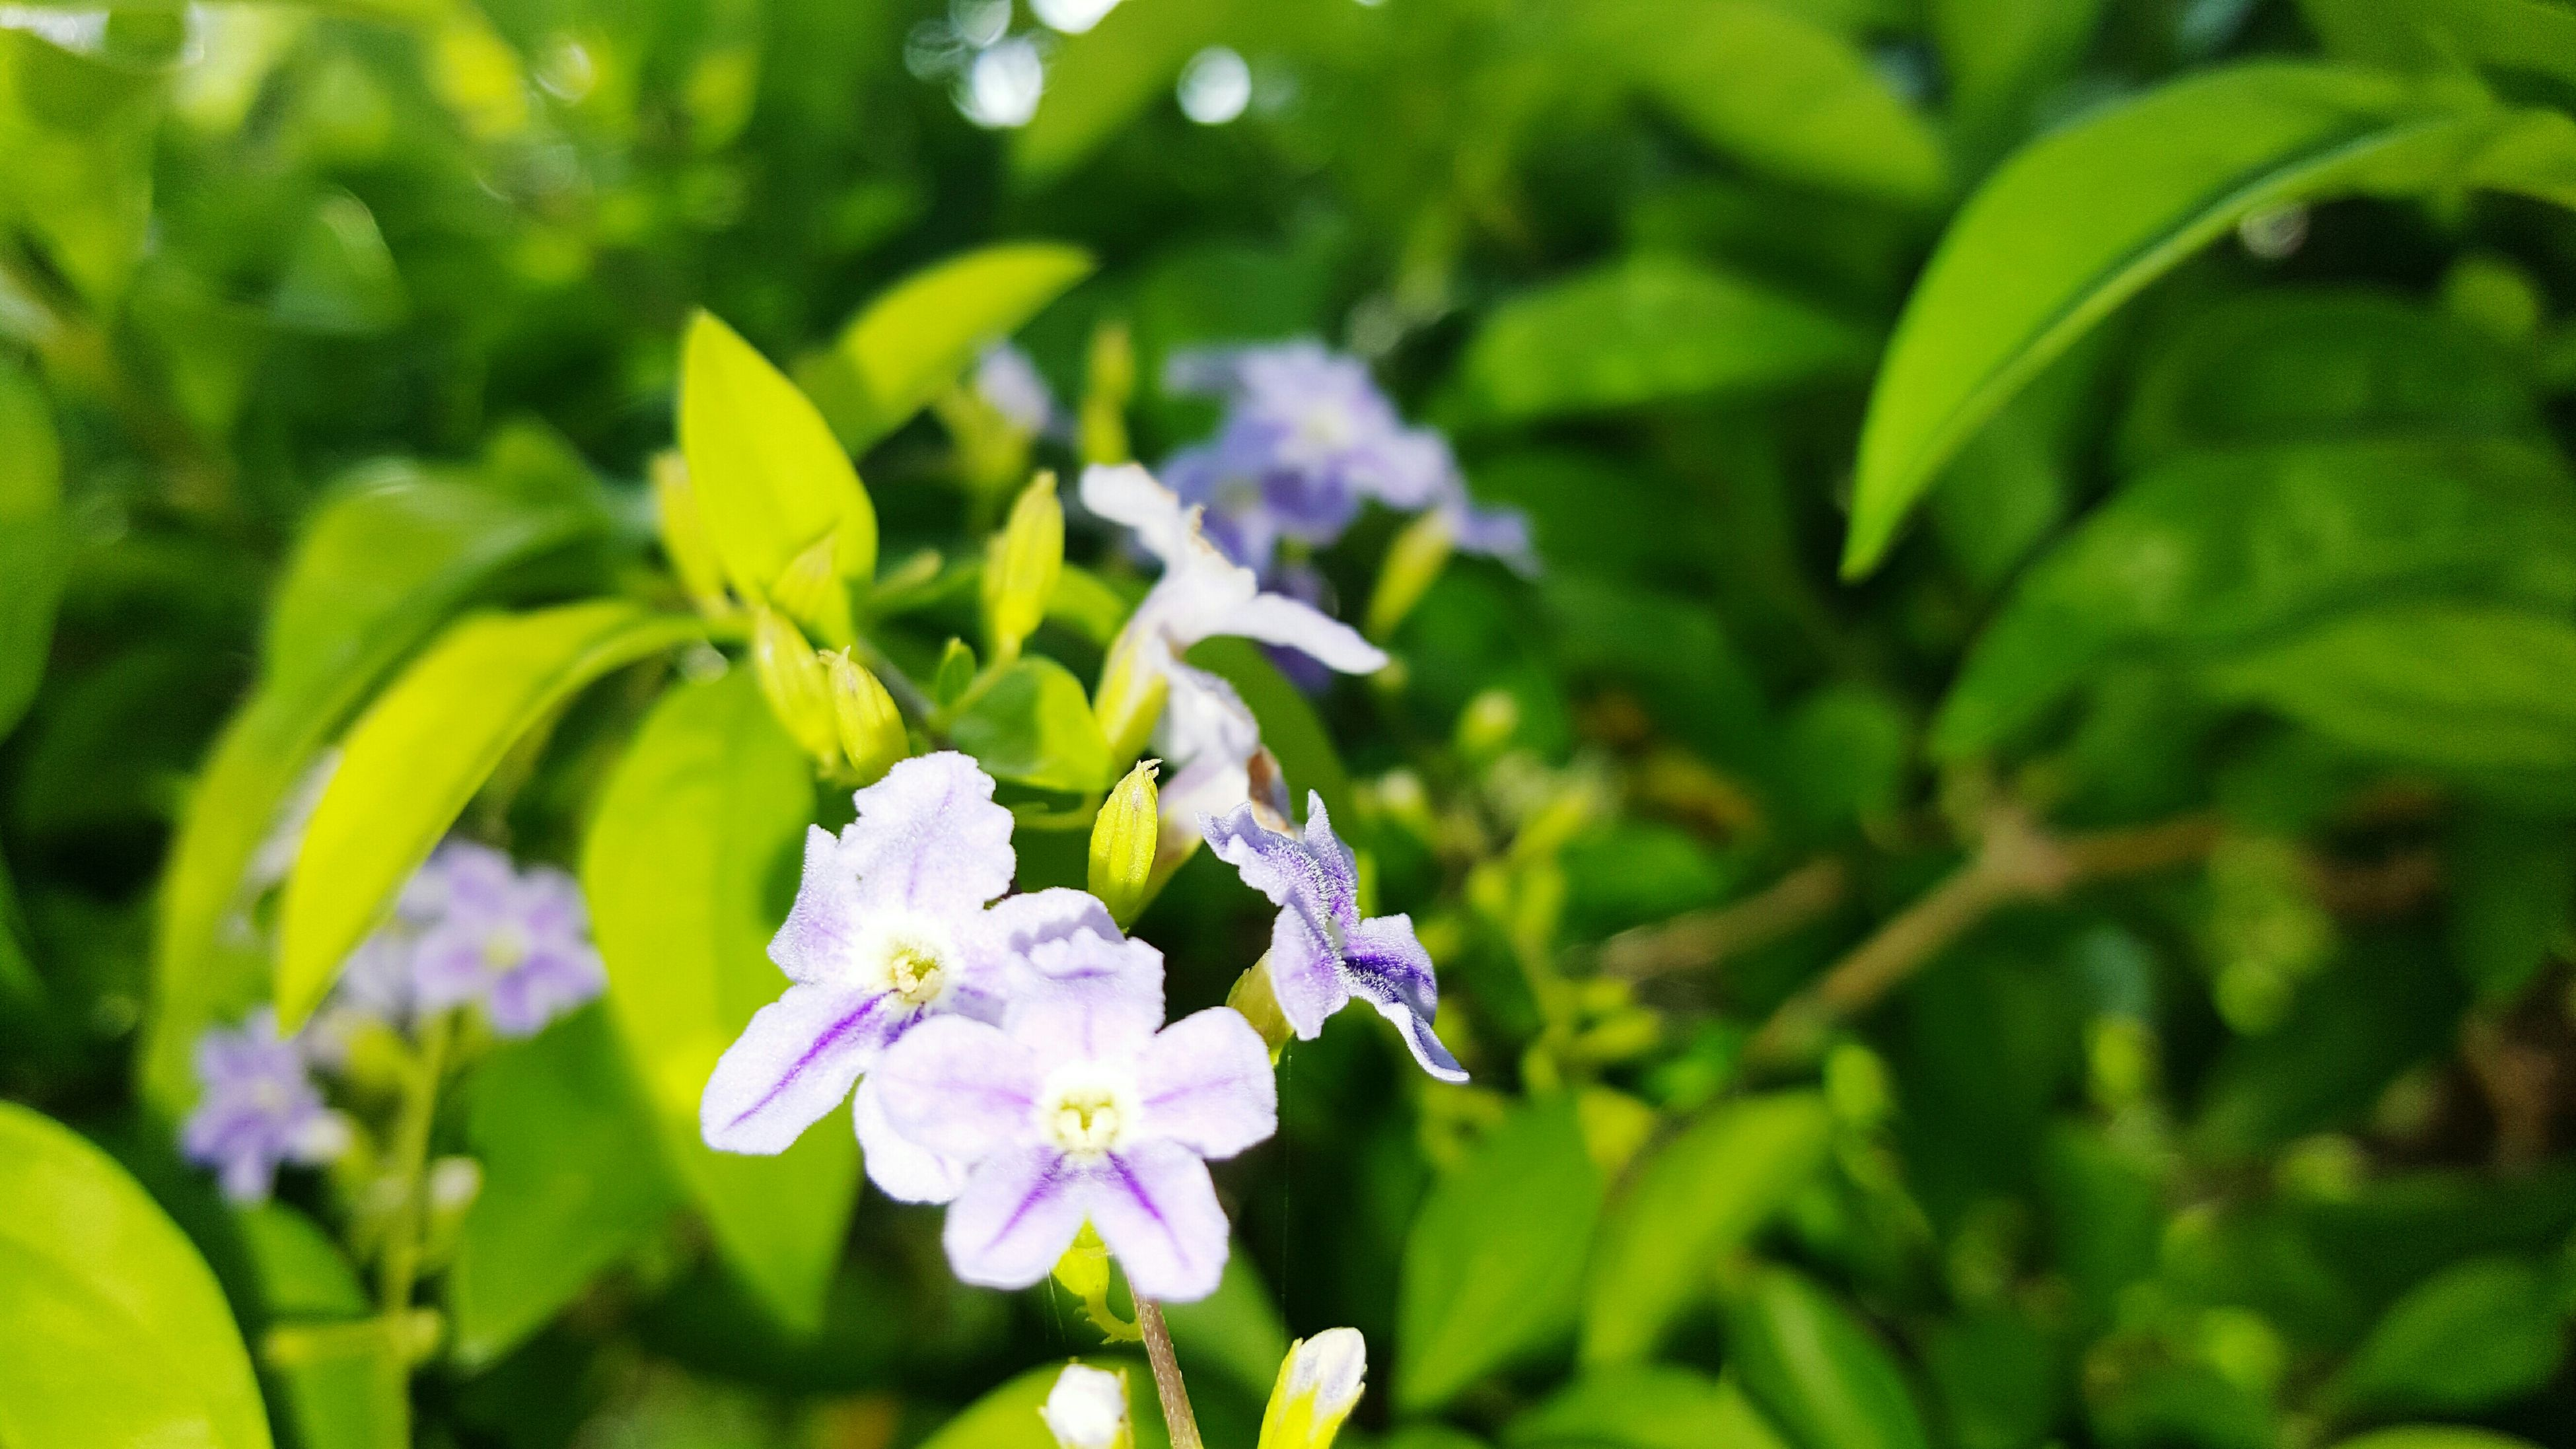 flower, freshness, fragility, petal, growth, flower head, beauty in nature, blooming, plant, focus on foreground, nature, close-up, purple, leaf, in bloom, green color, park - man made space, blossom, outdoors, yellow